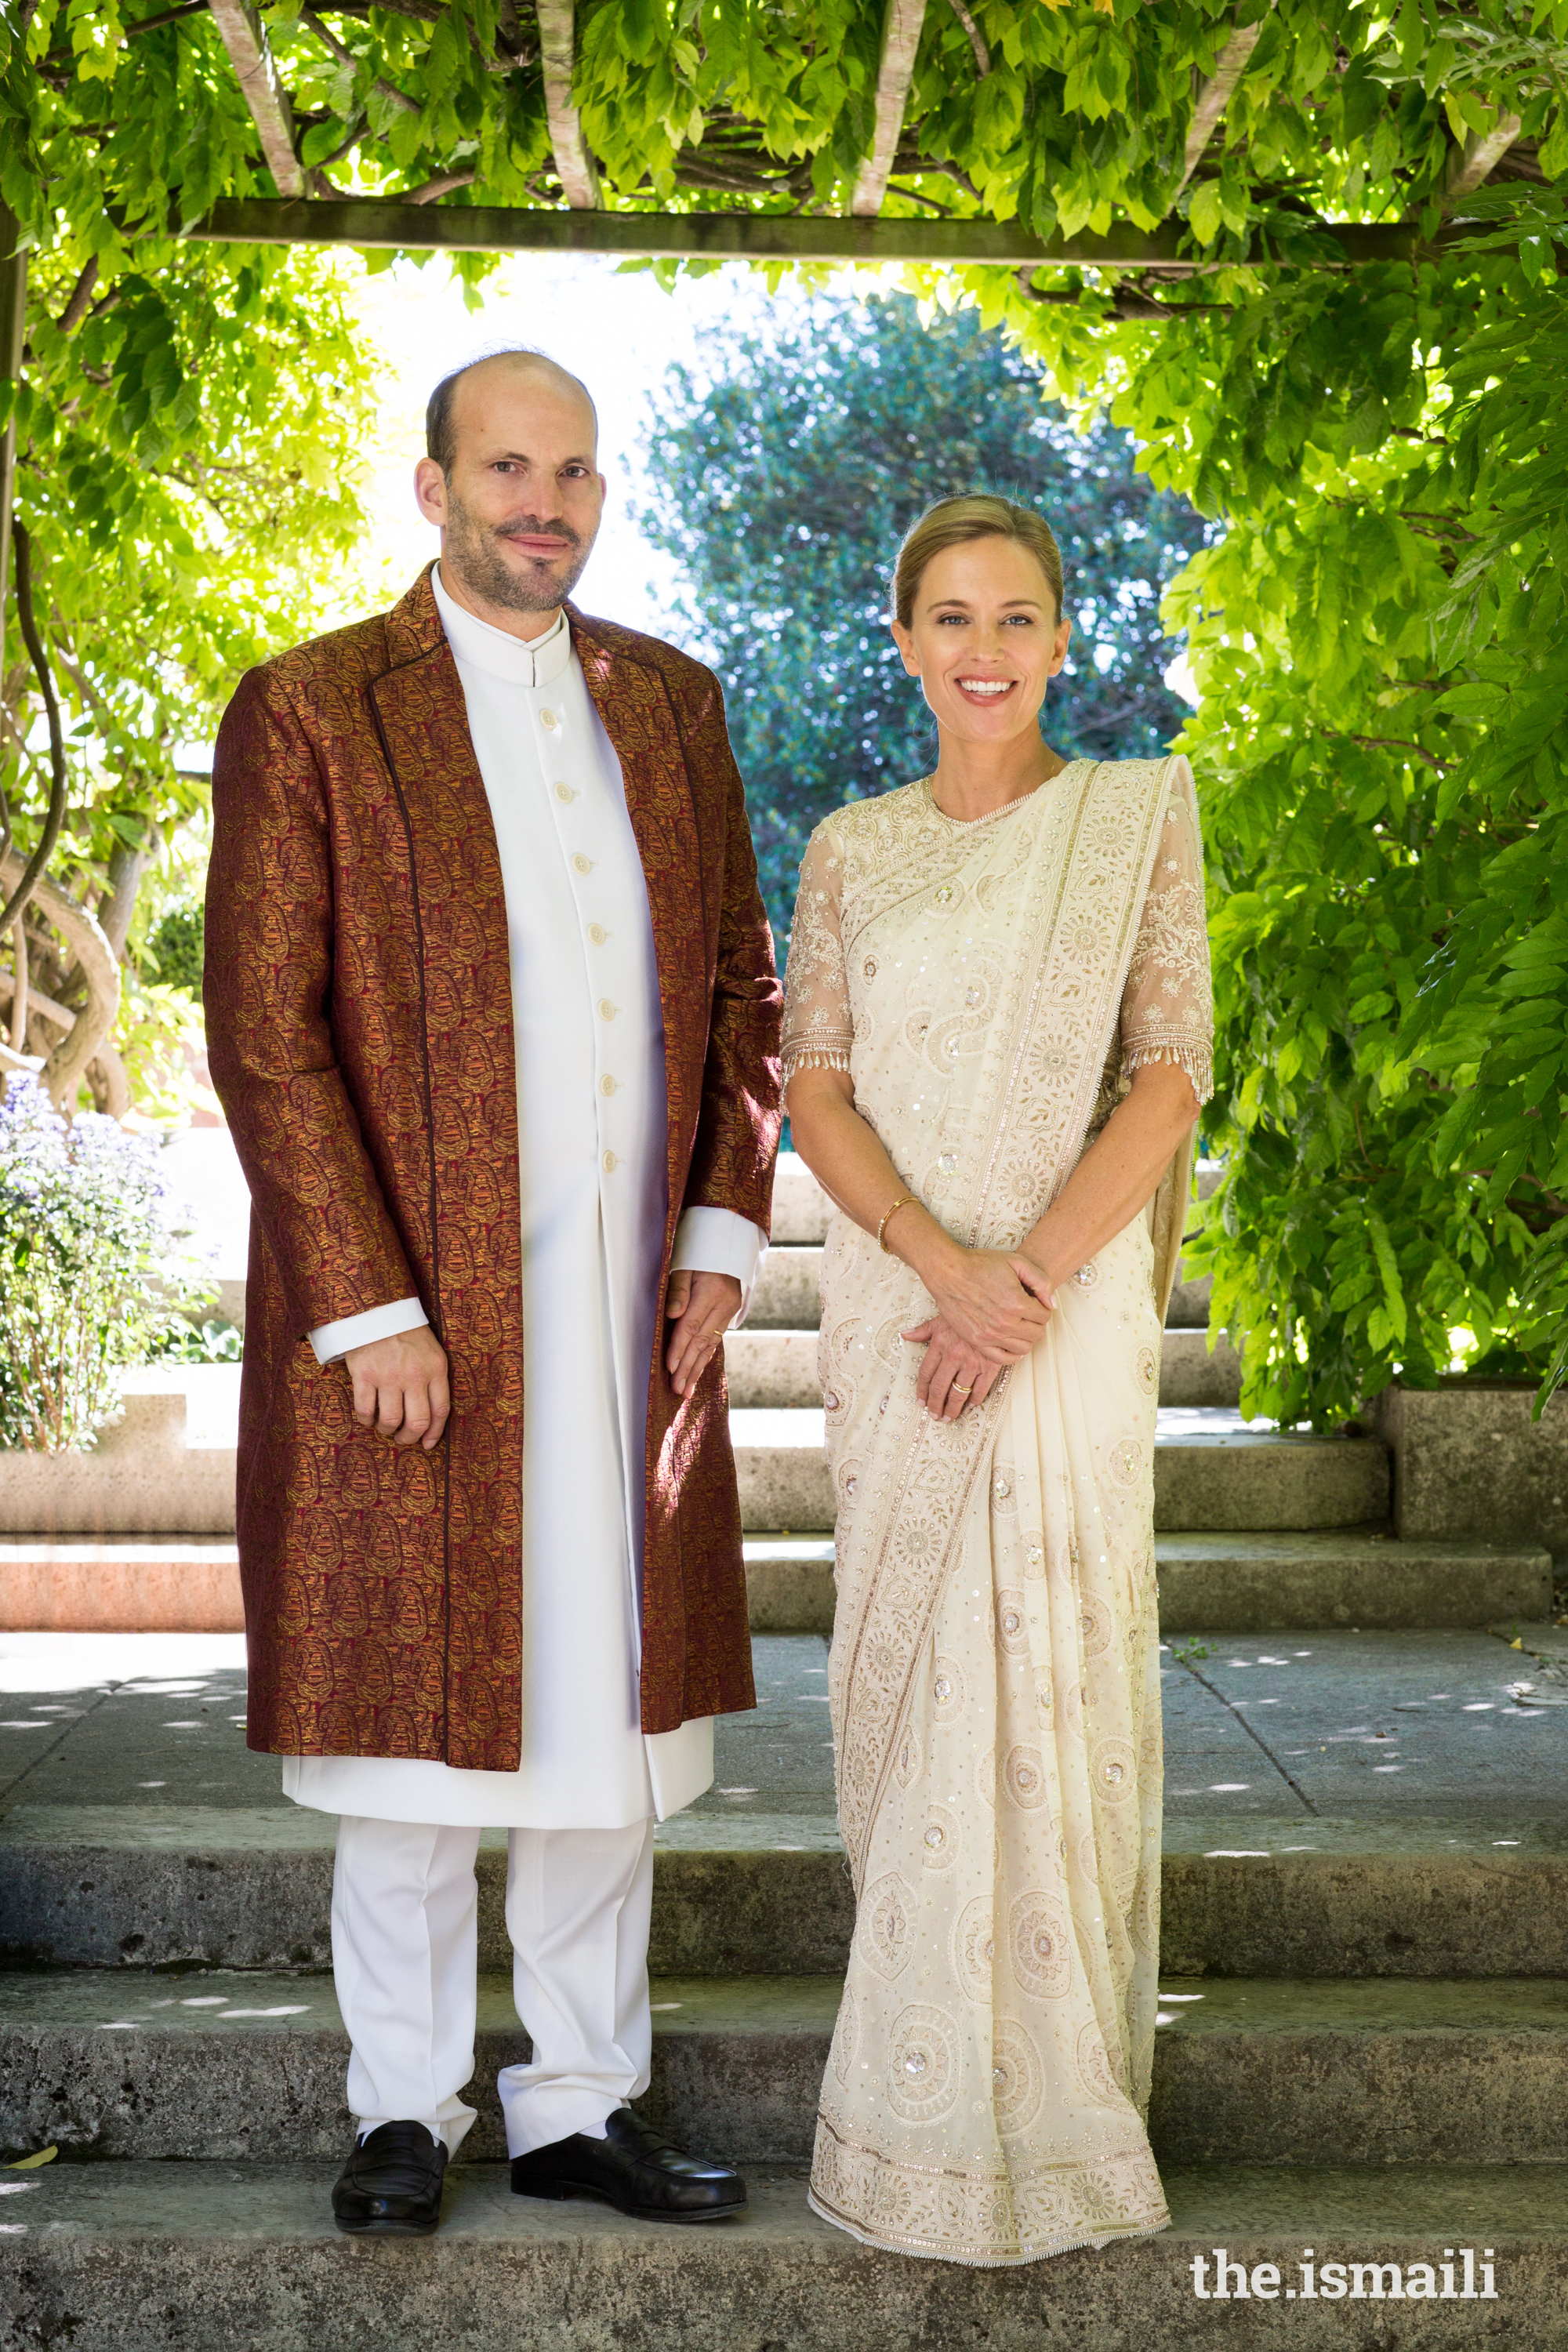 Prince Hussain and Princess Fareen were married on 29 September 2019 in Geneva, Switzerland.